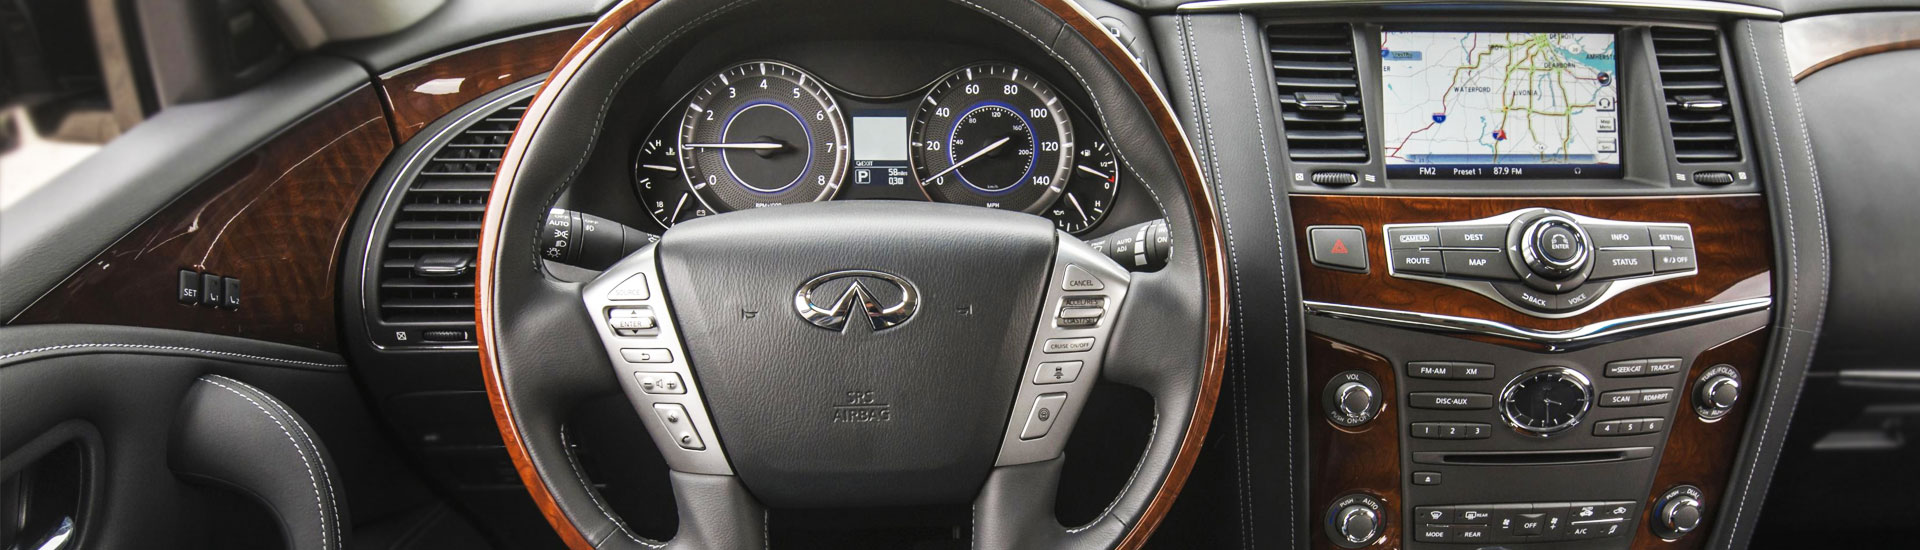 2006 Infiniti G35 Custom Dash Kits